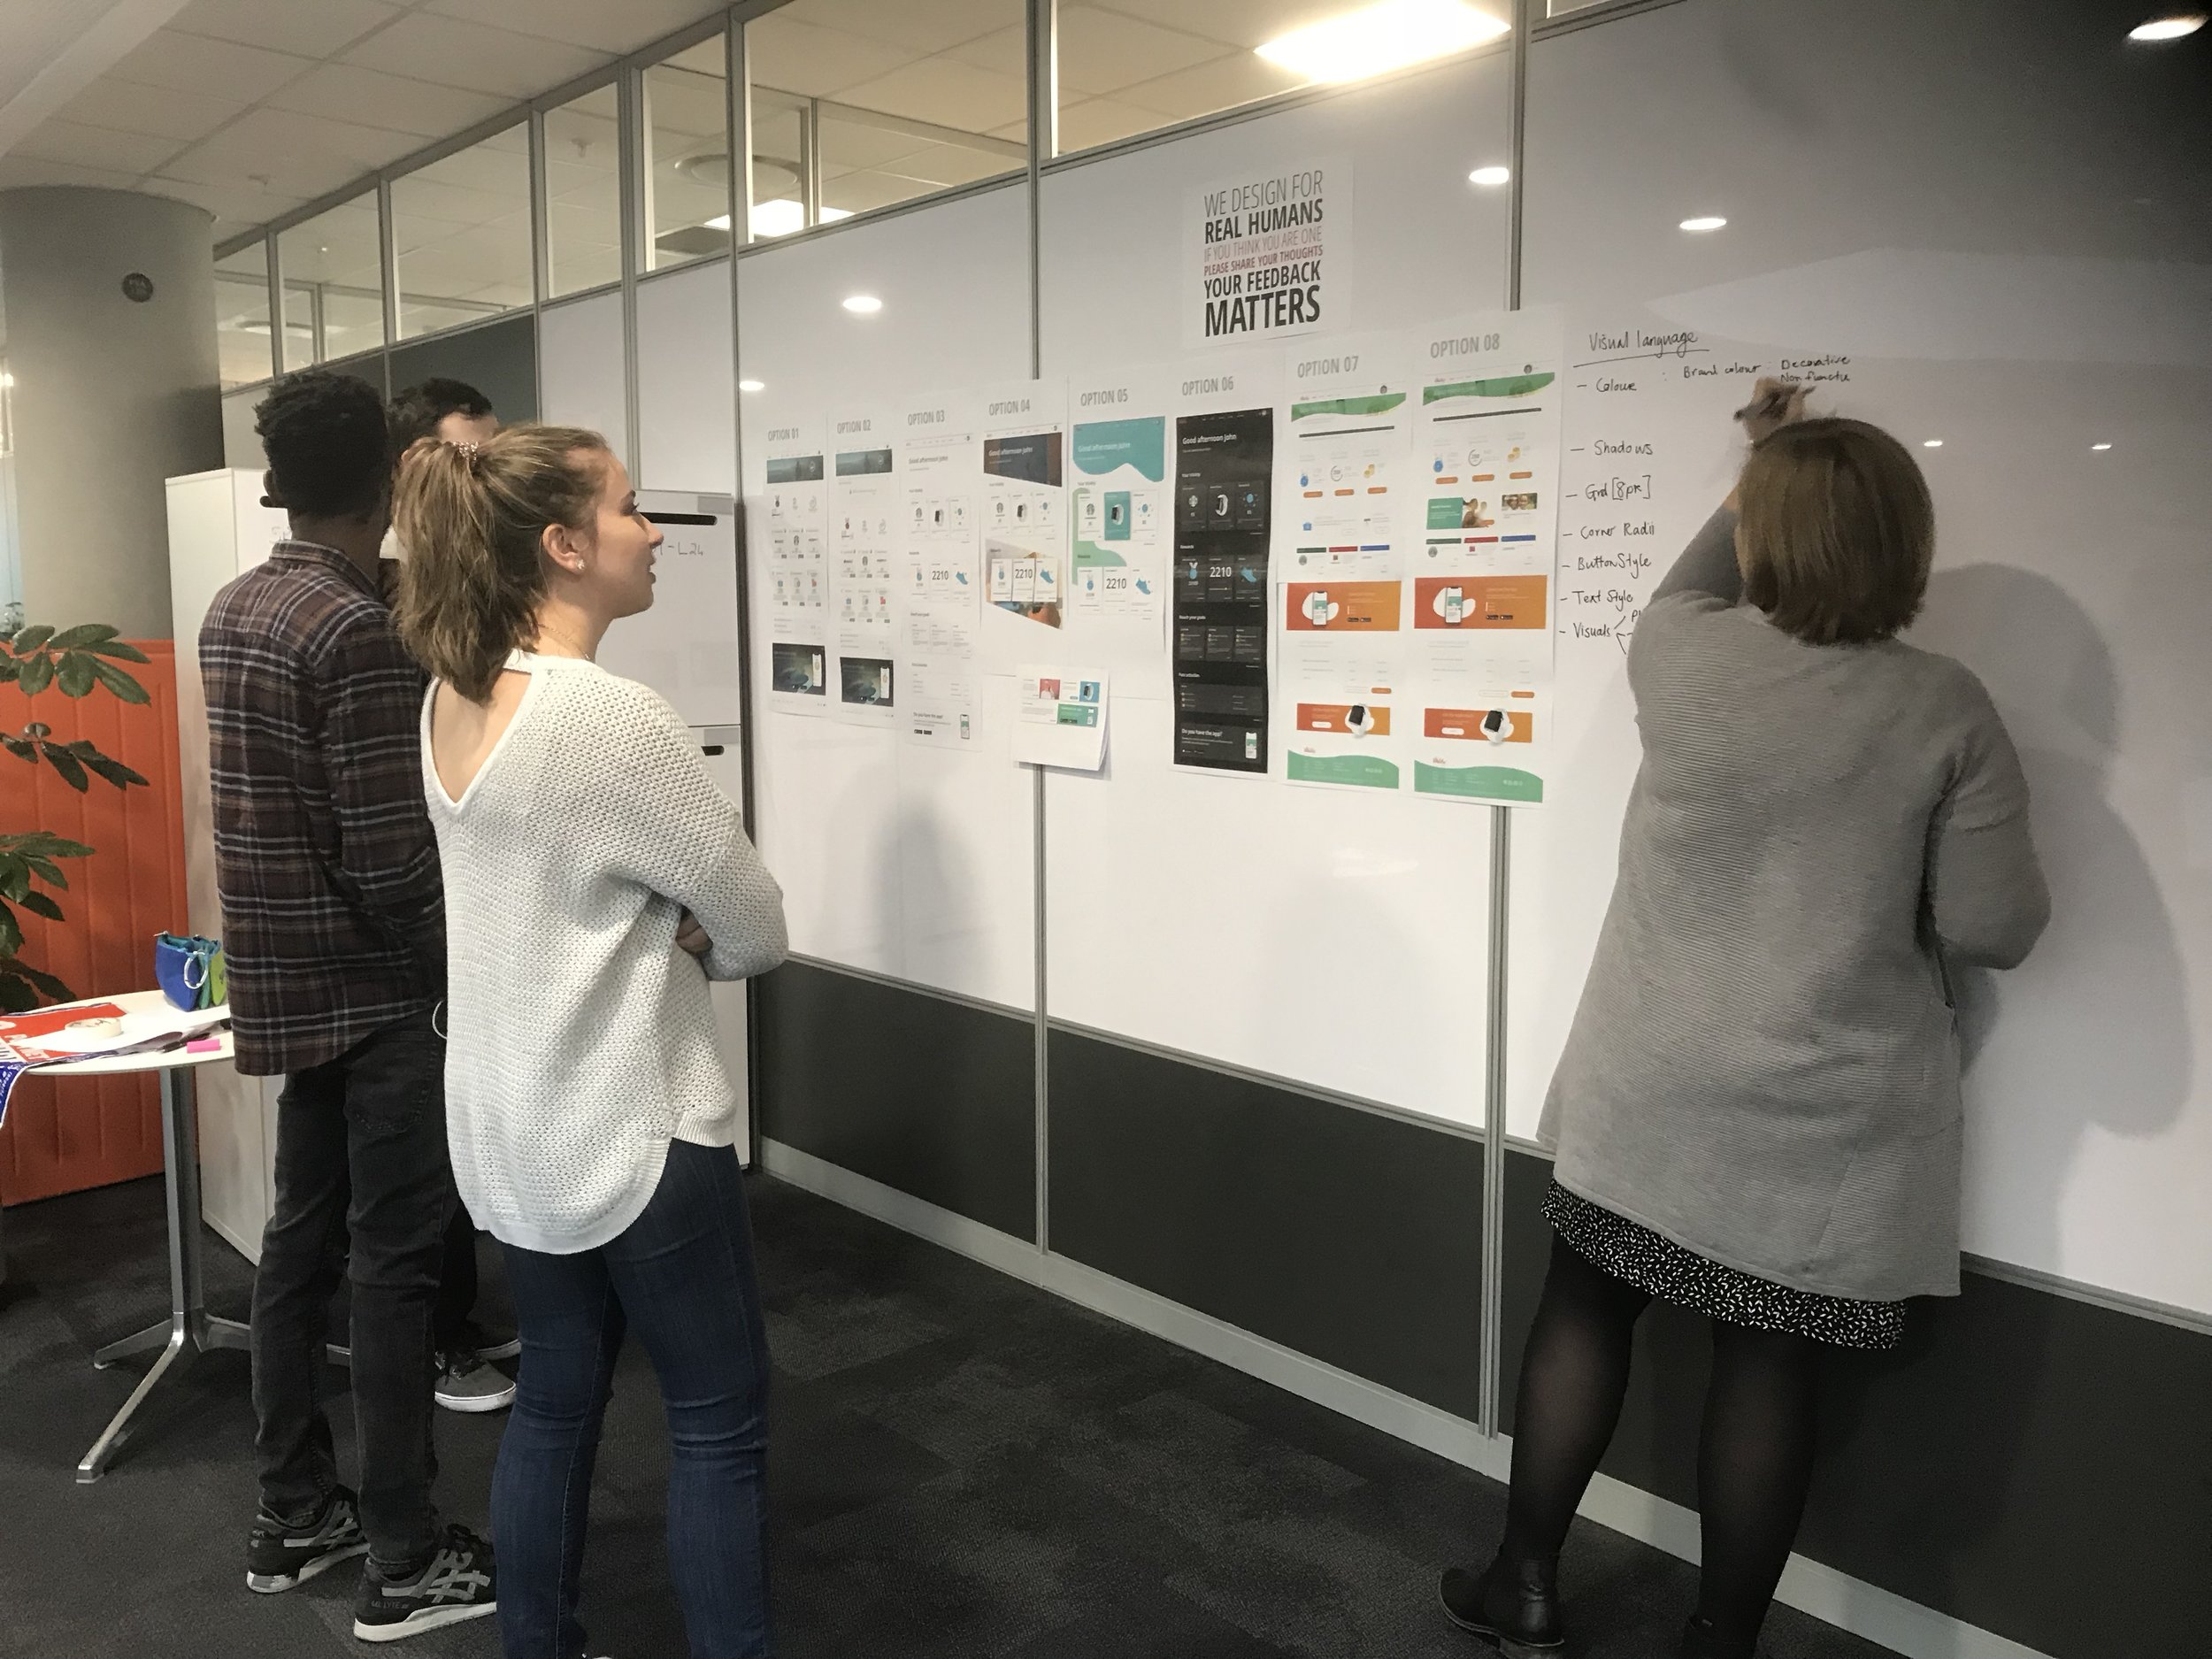 Service Design Immersion - Learn how to apply Service Design methods in a 2 day action learning programme designed to work on your business challenges.